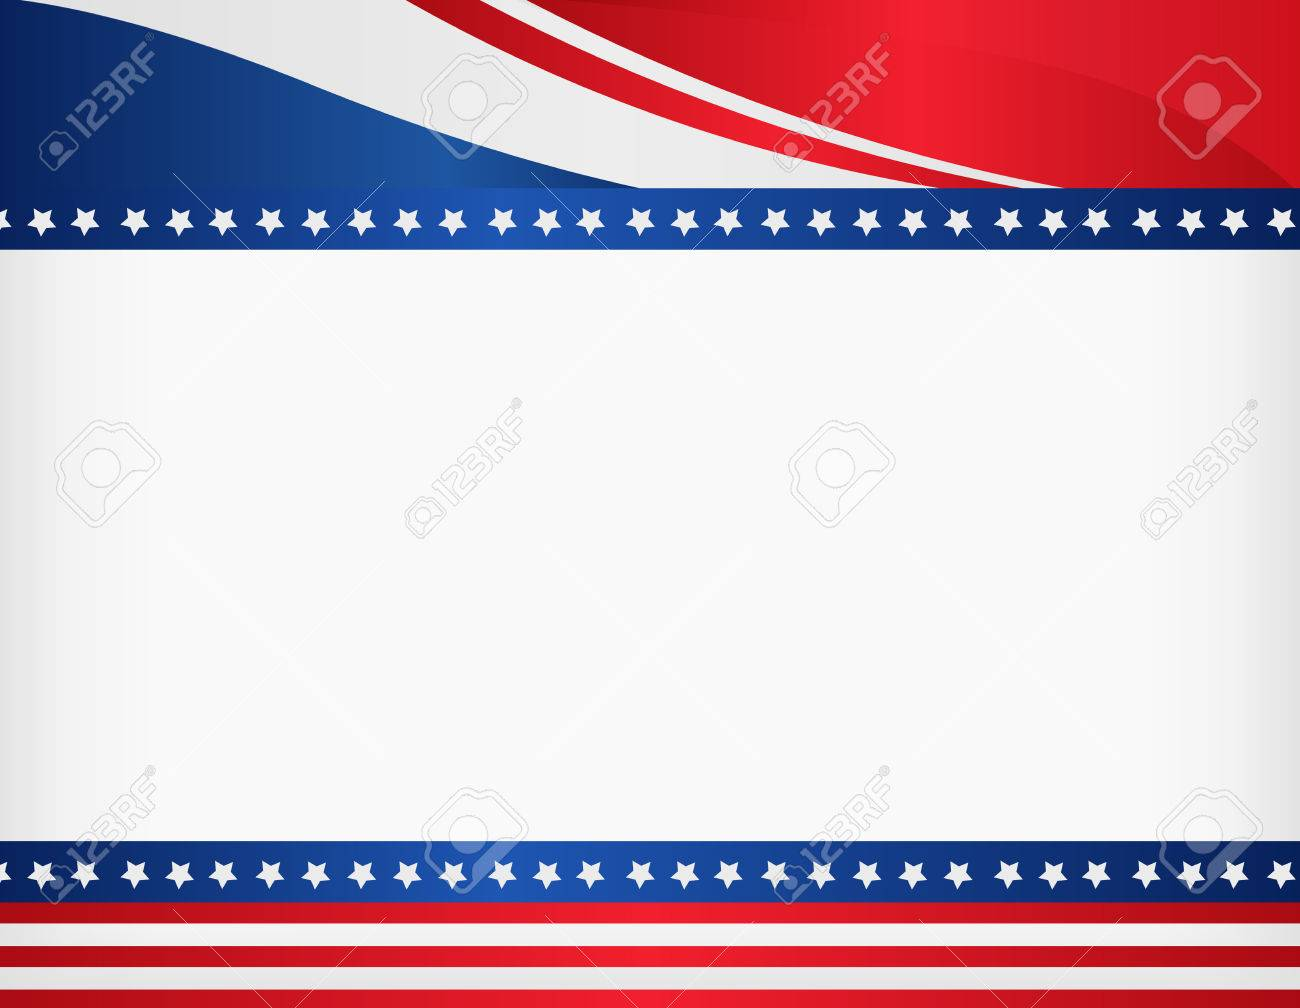 American / USA patriotic frame with empty space on center A traditional vintage american poster design - 38529239